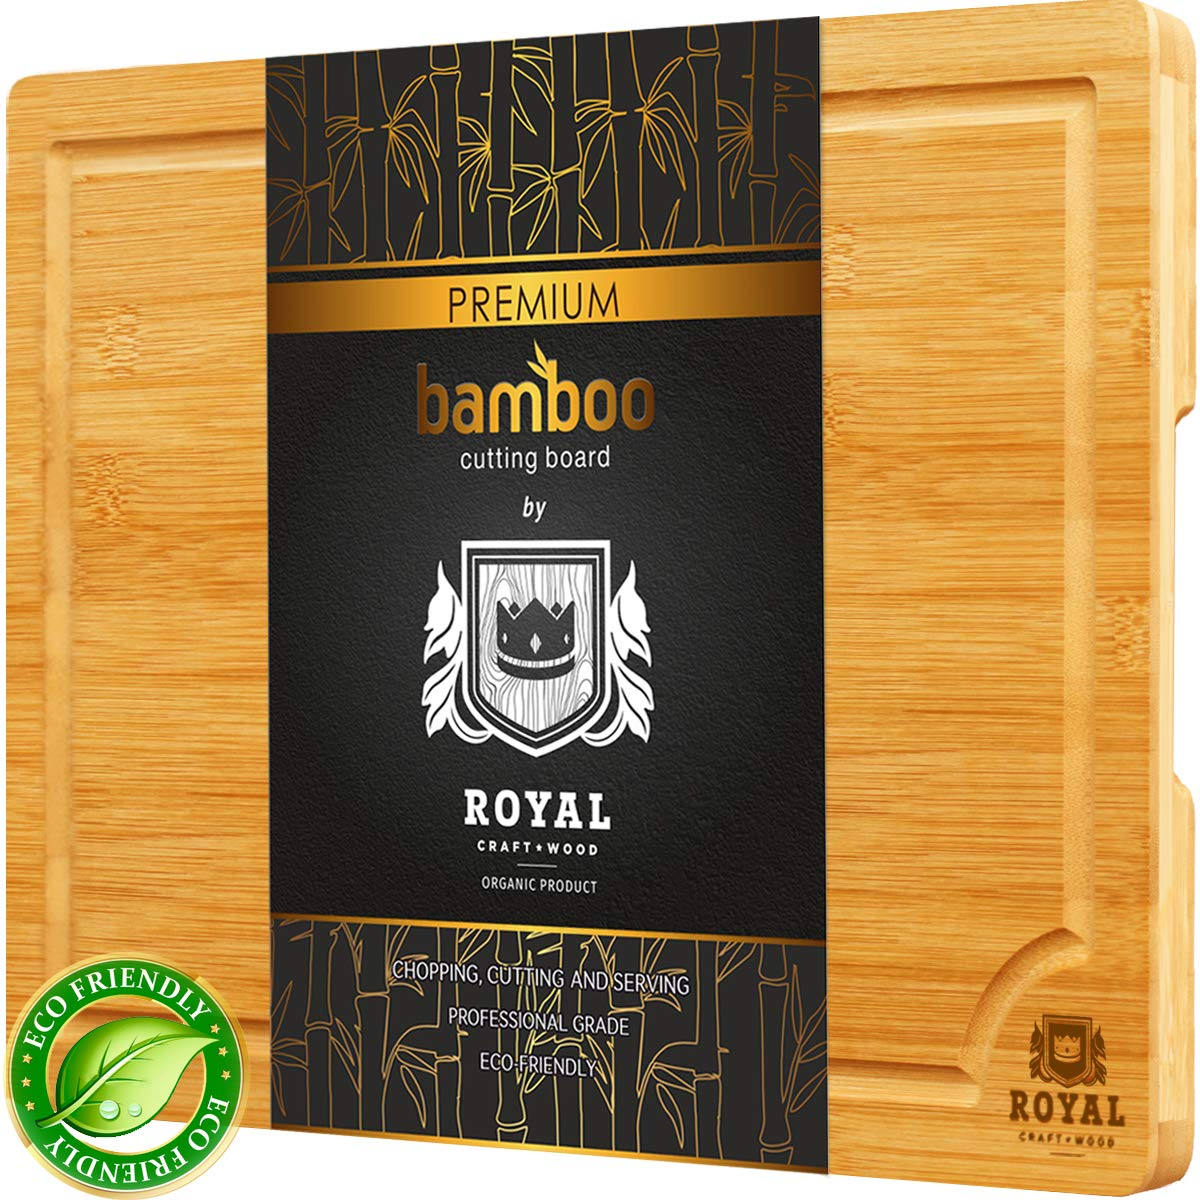 Bamboo Cutting Board w/Juice Groove & Handles - Butcher Block for Chopping Meat & Vegetables - Kitchen Cutting Boards, 10x15 by Royal Craft Wood